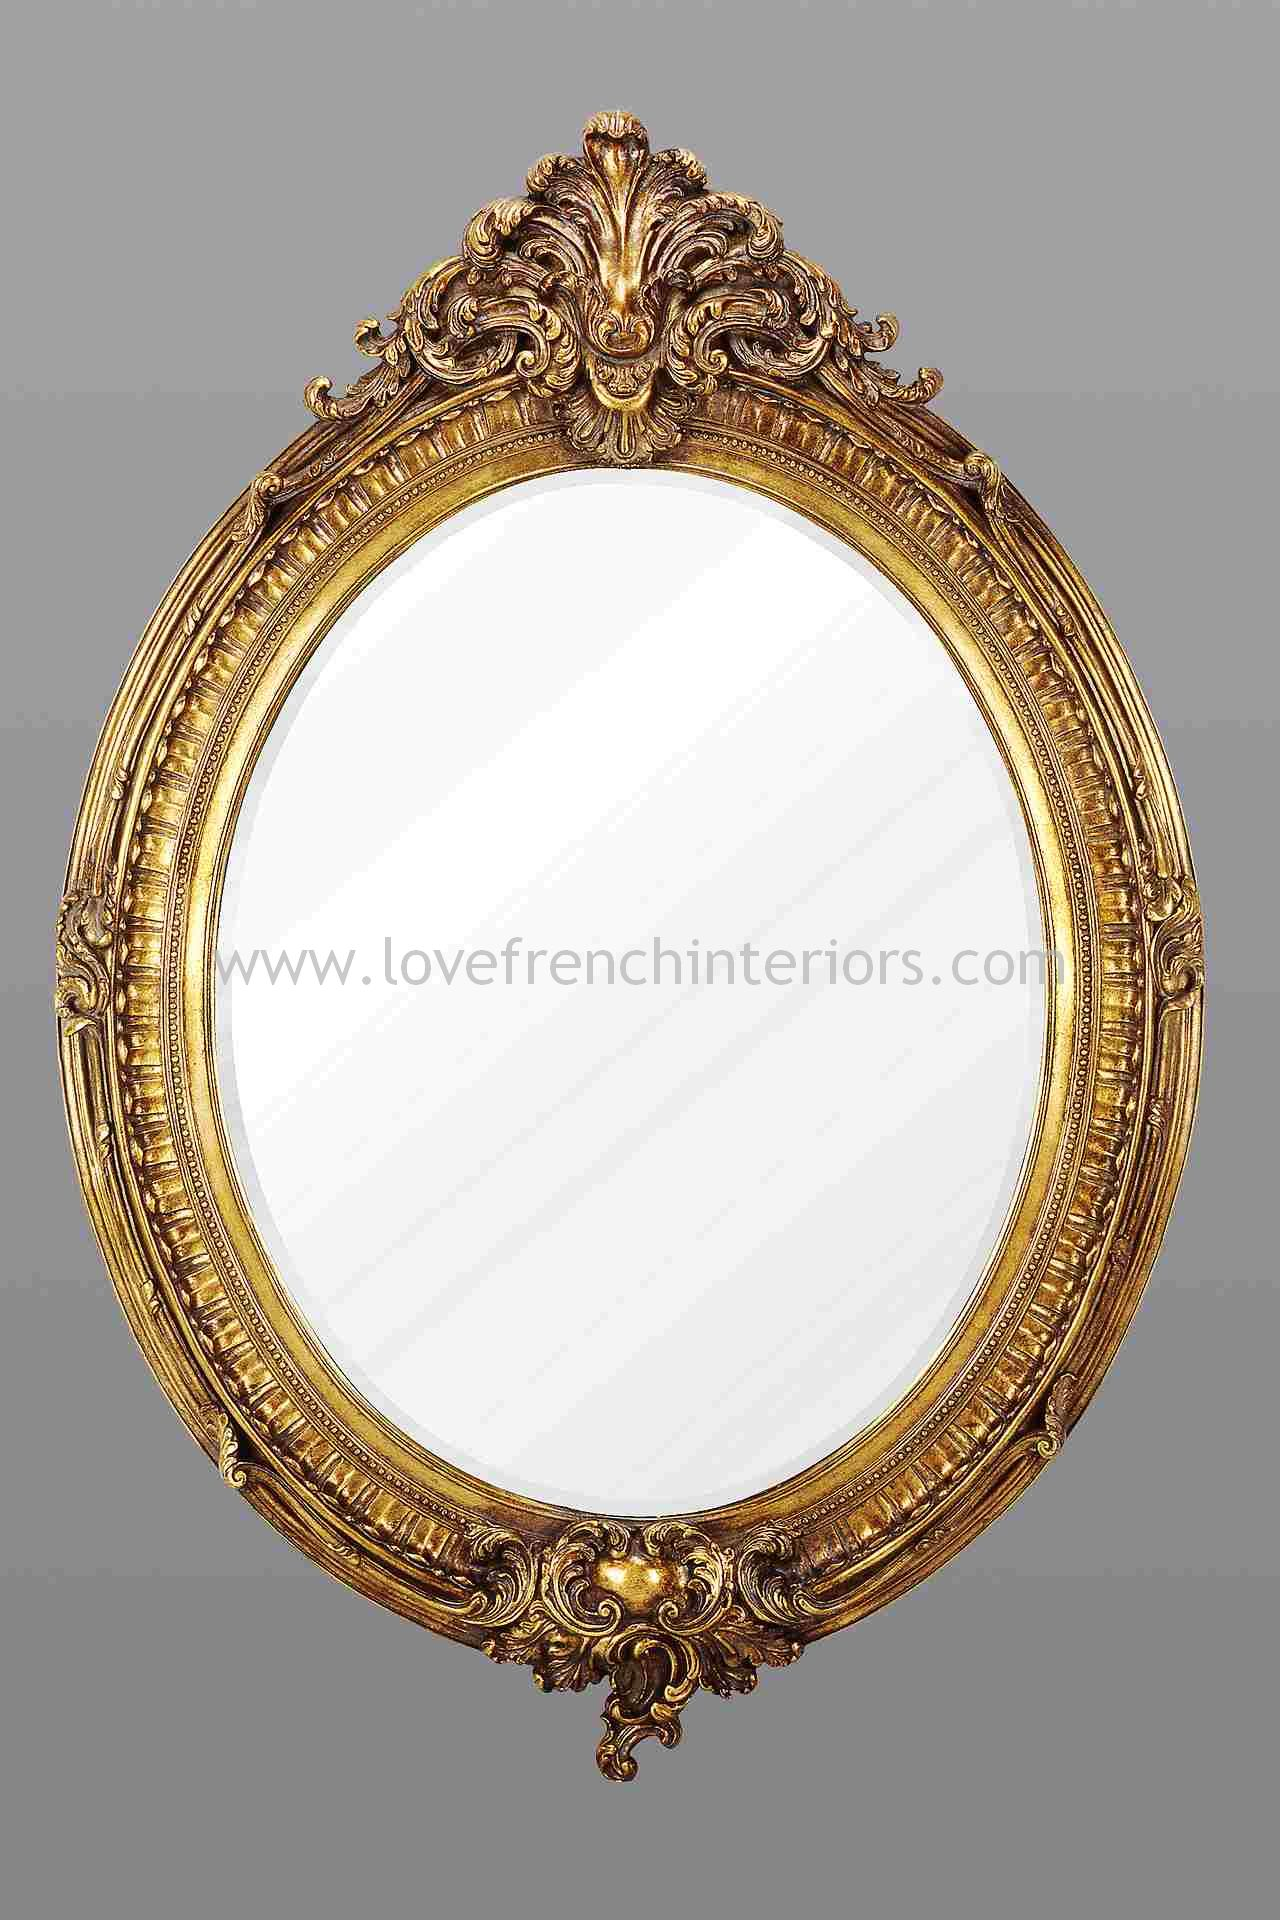 Wall Mirror Oval Gold Silver Black White Gold 58x42 cm Mirror Antique Shabby. Email to friends Share on Facebook - opens in a new window or tab Share on Twitter - opens in a new window or tab Share on Pinterest - opens in a new window or tab | Add to watch list. Seller information. pintici.